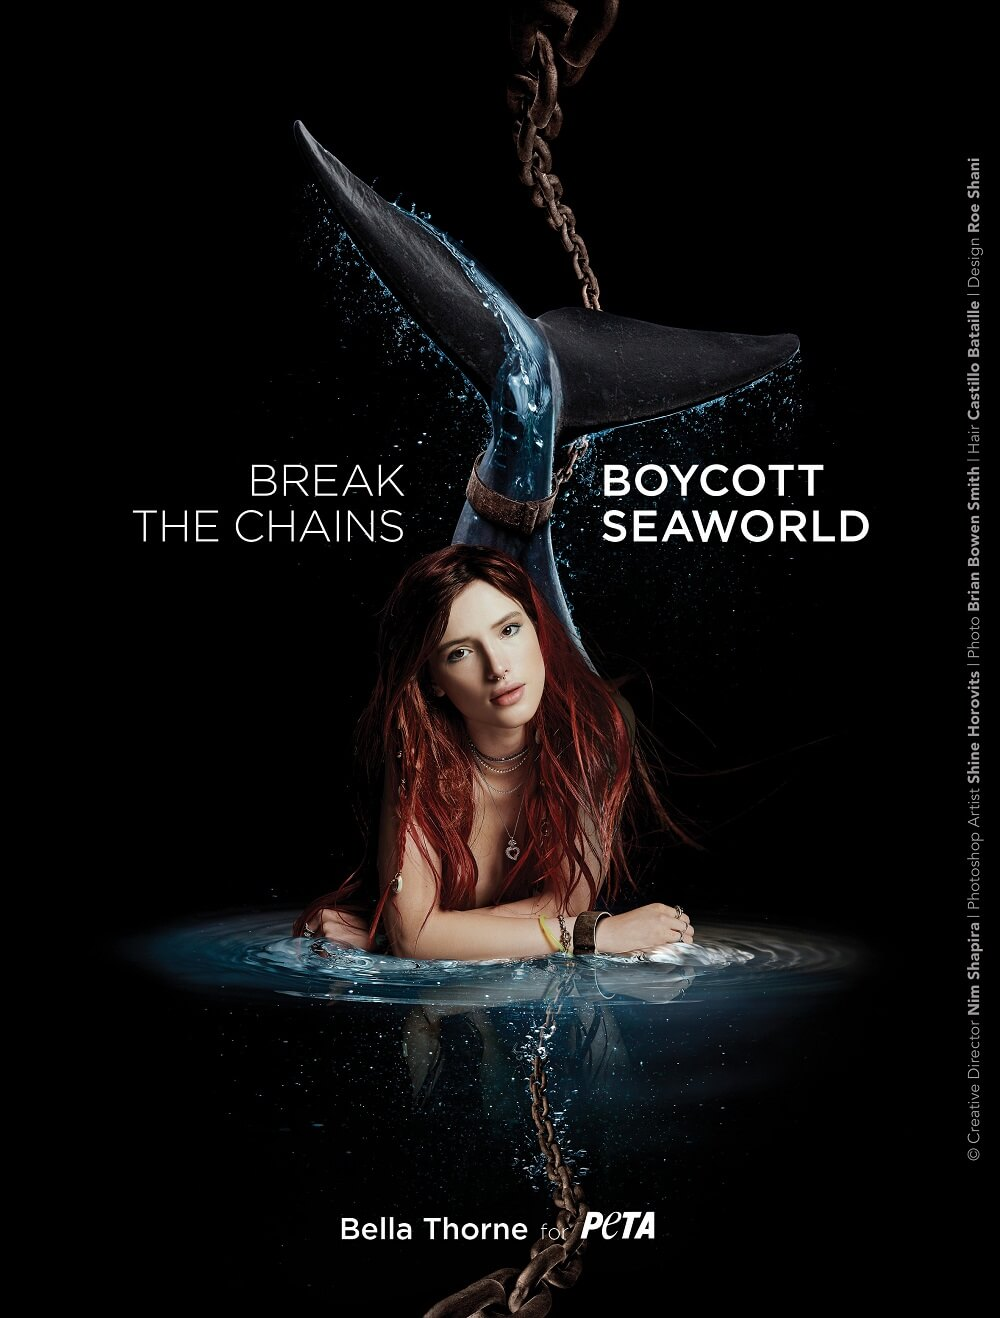 BellaThorne_SeaWorld-Resized.jpg